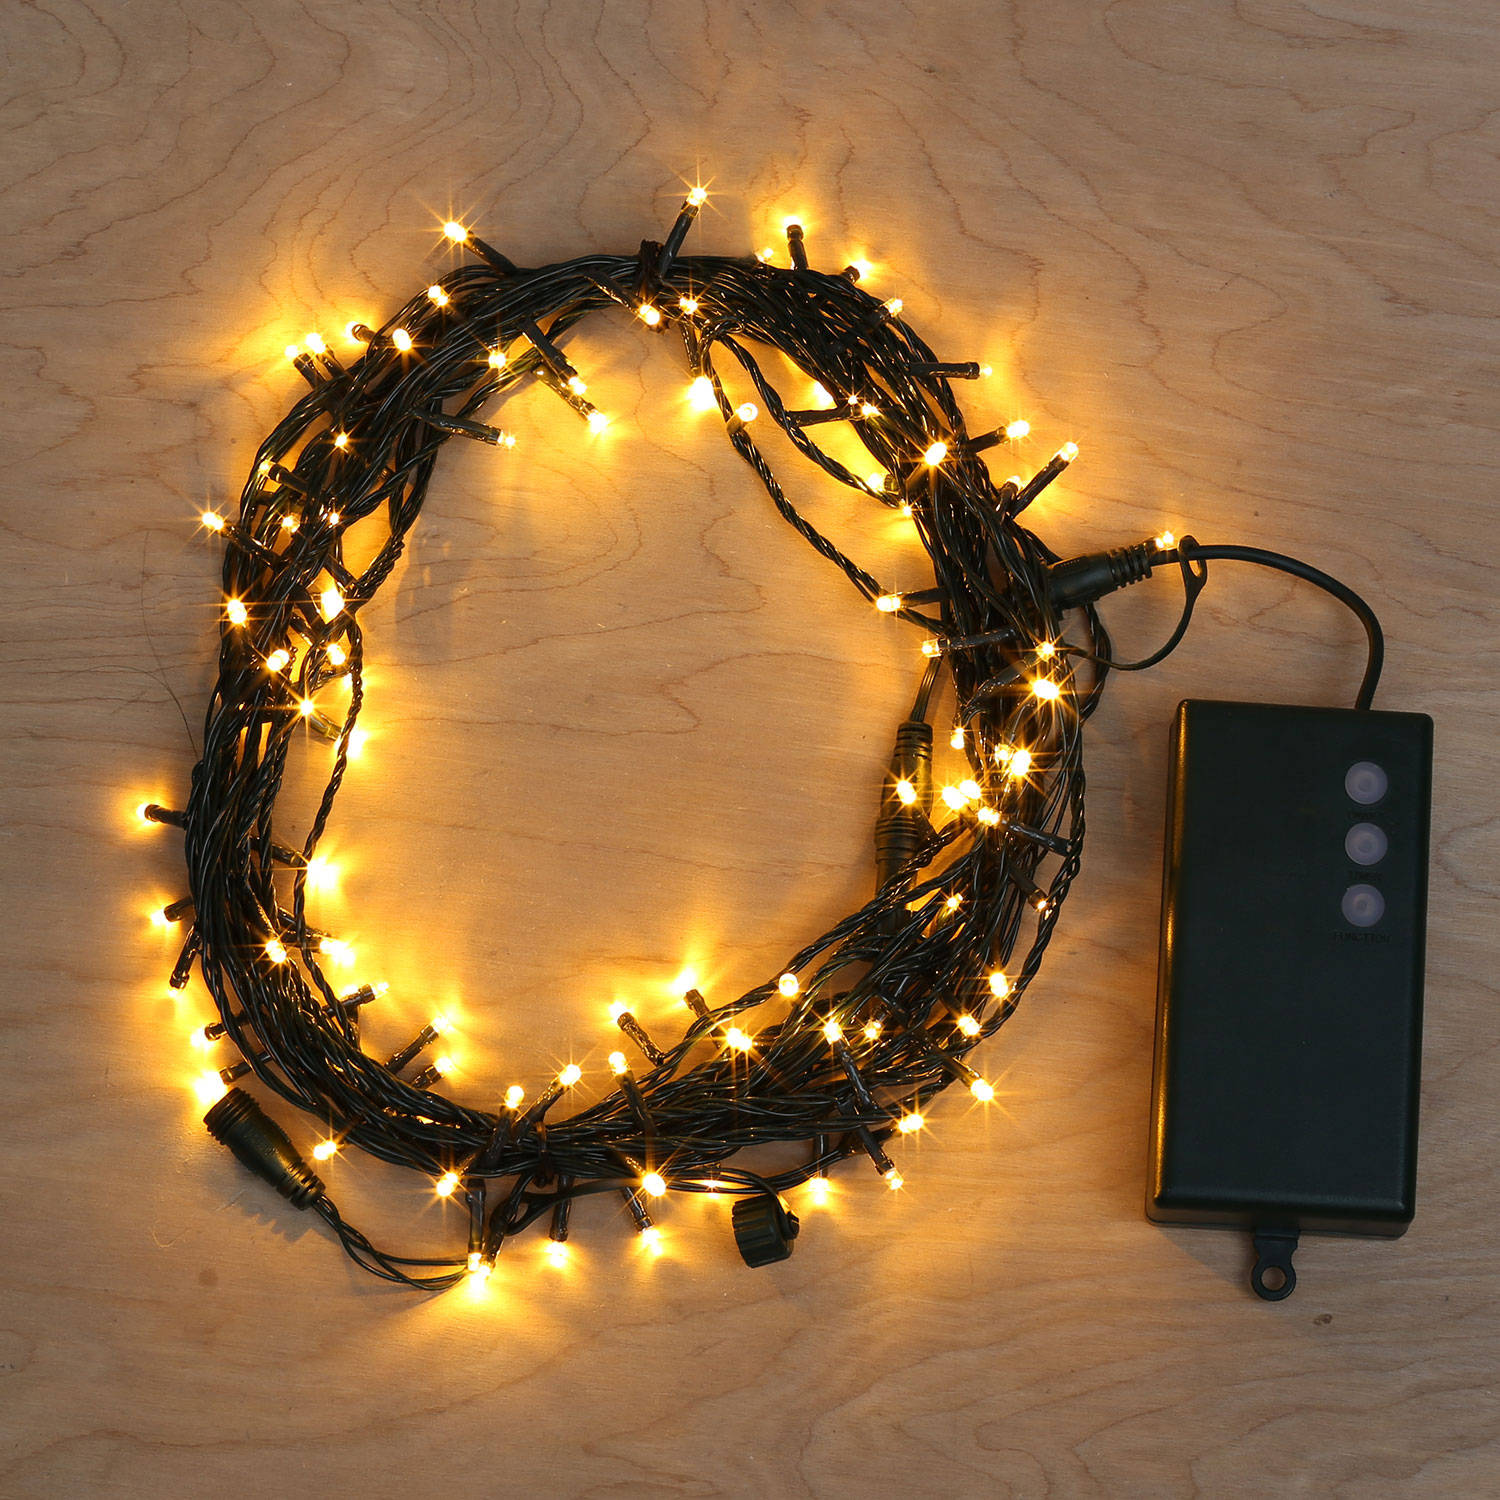 Best String Christmas Lights : Events, Promotions and Inspirations from Lights.com